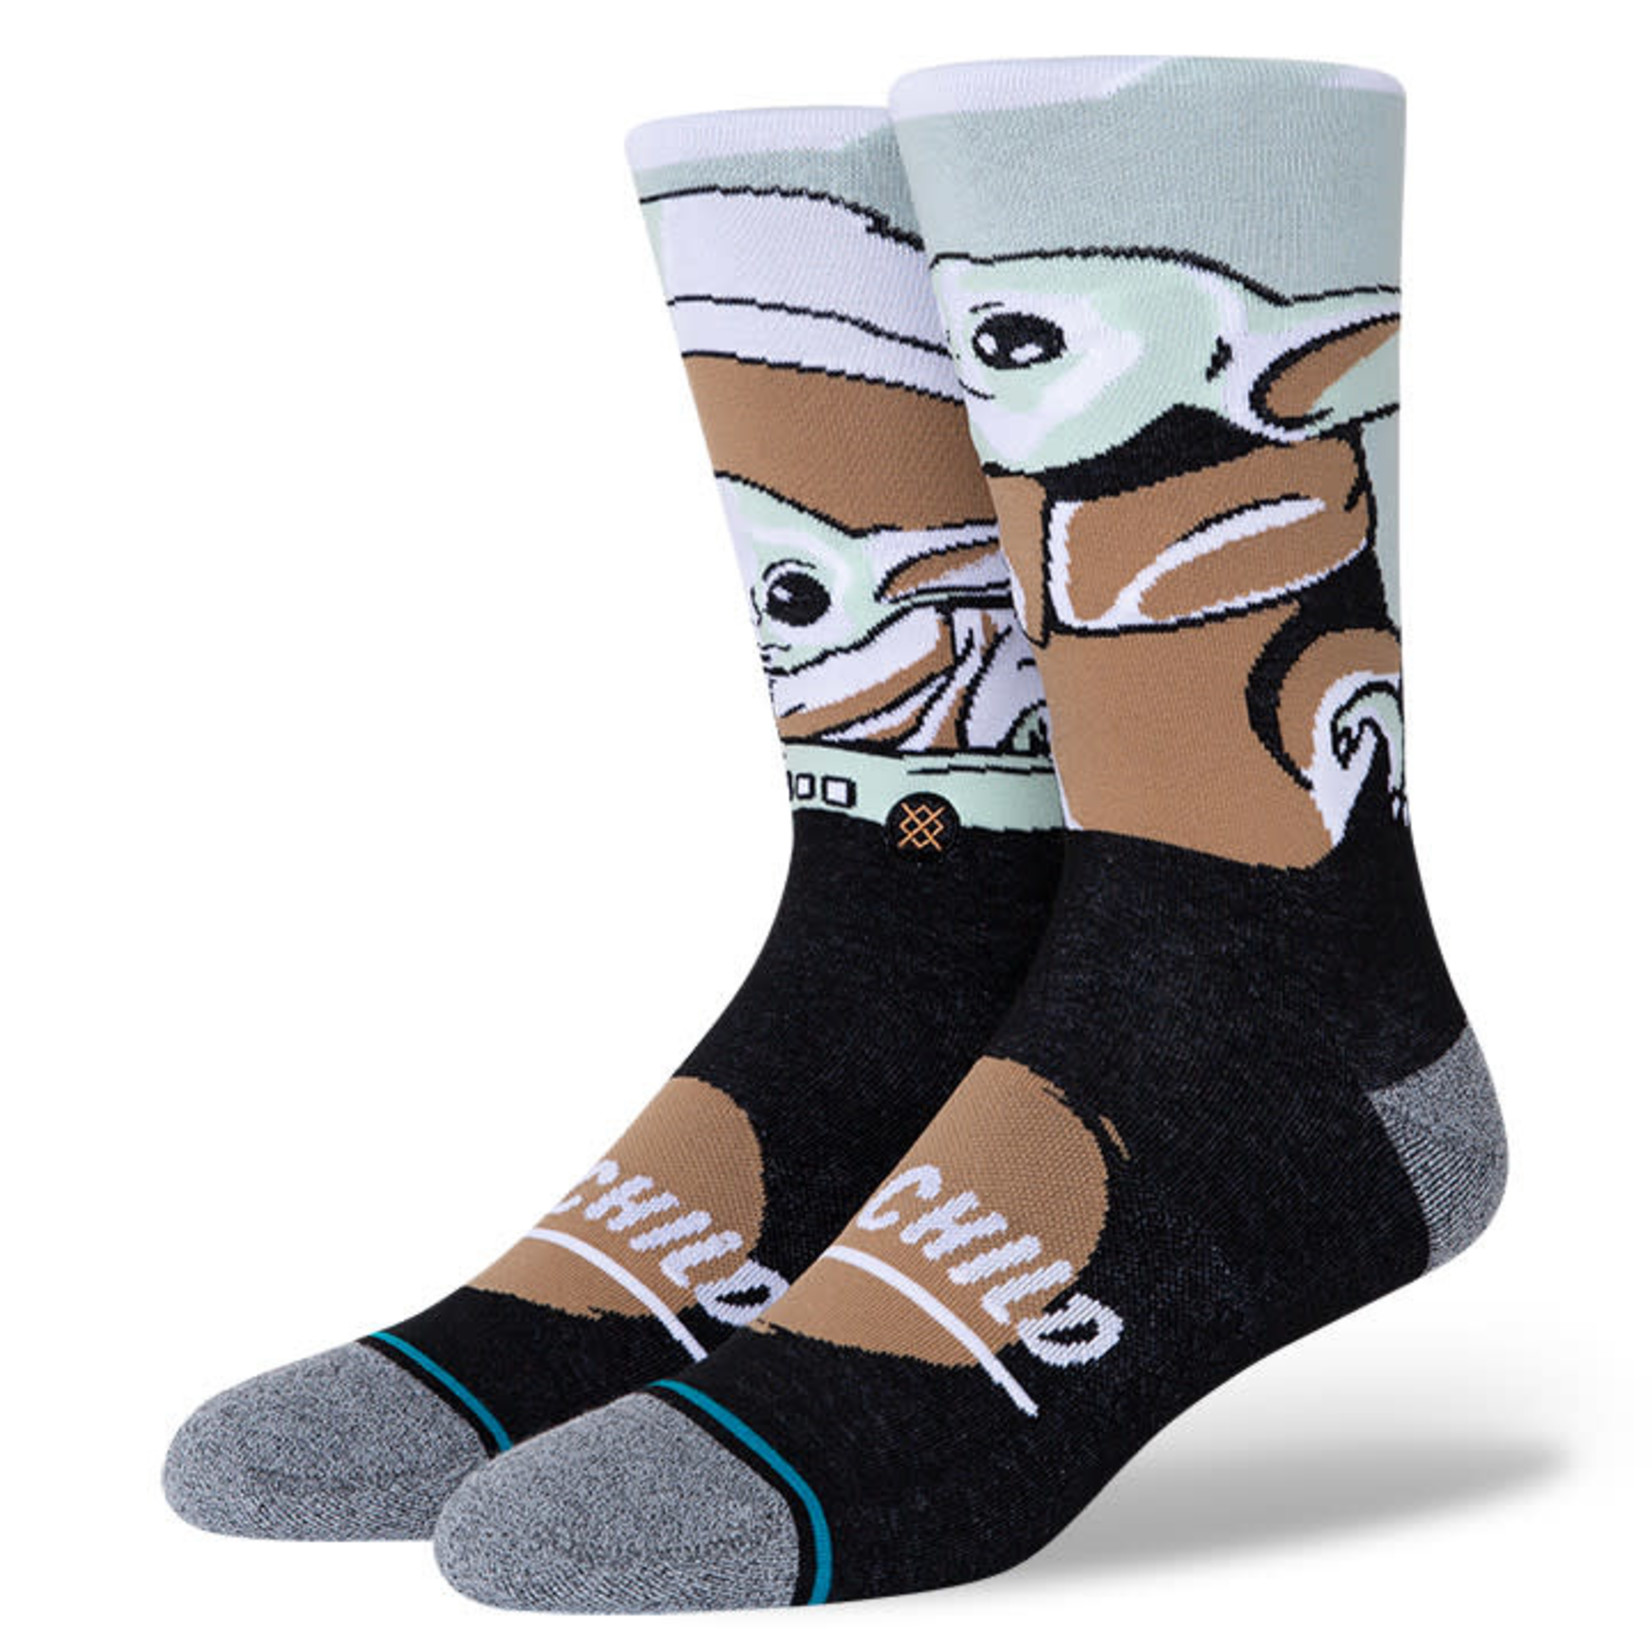 Stance Stance Mens Sock The Child L (9-13)